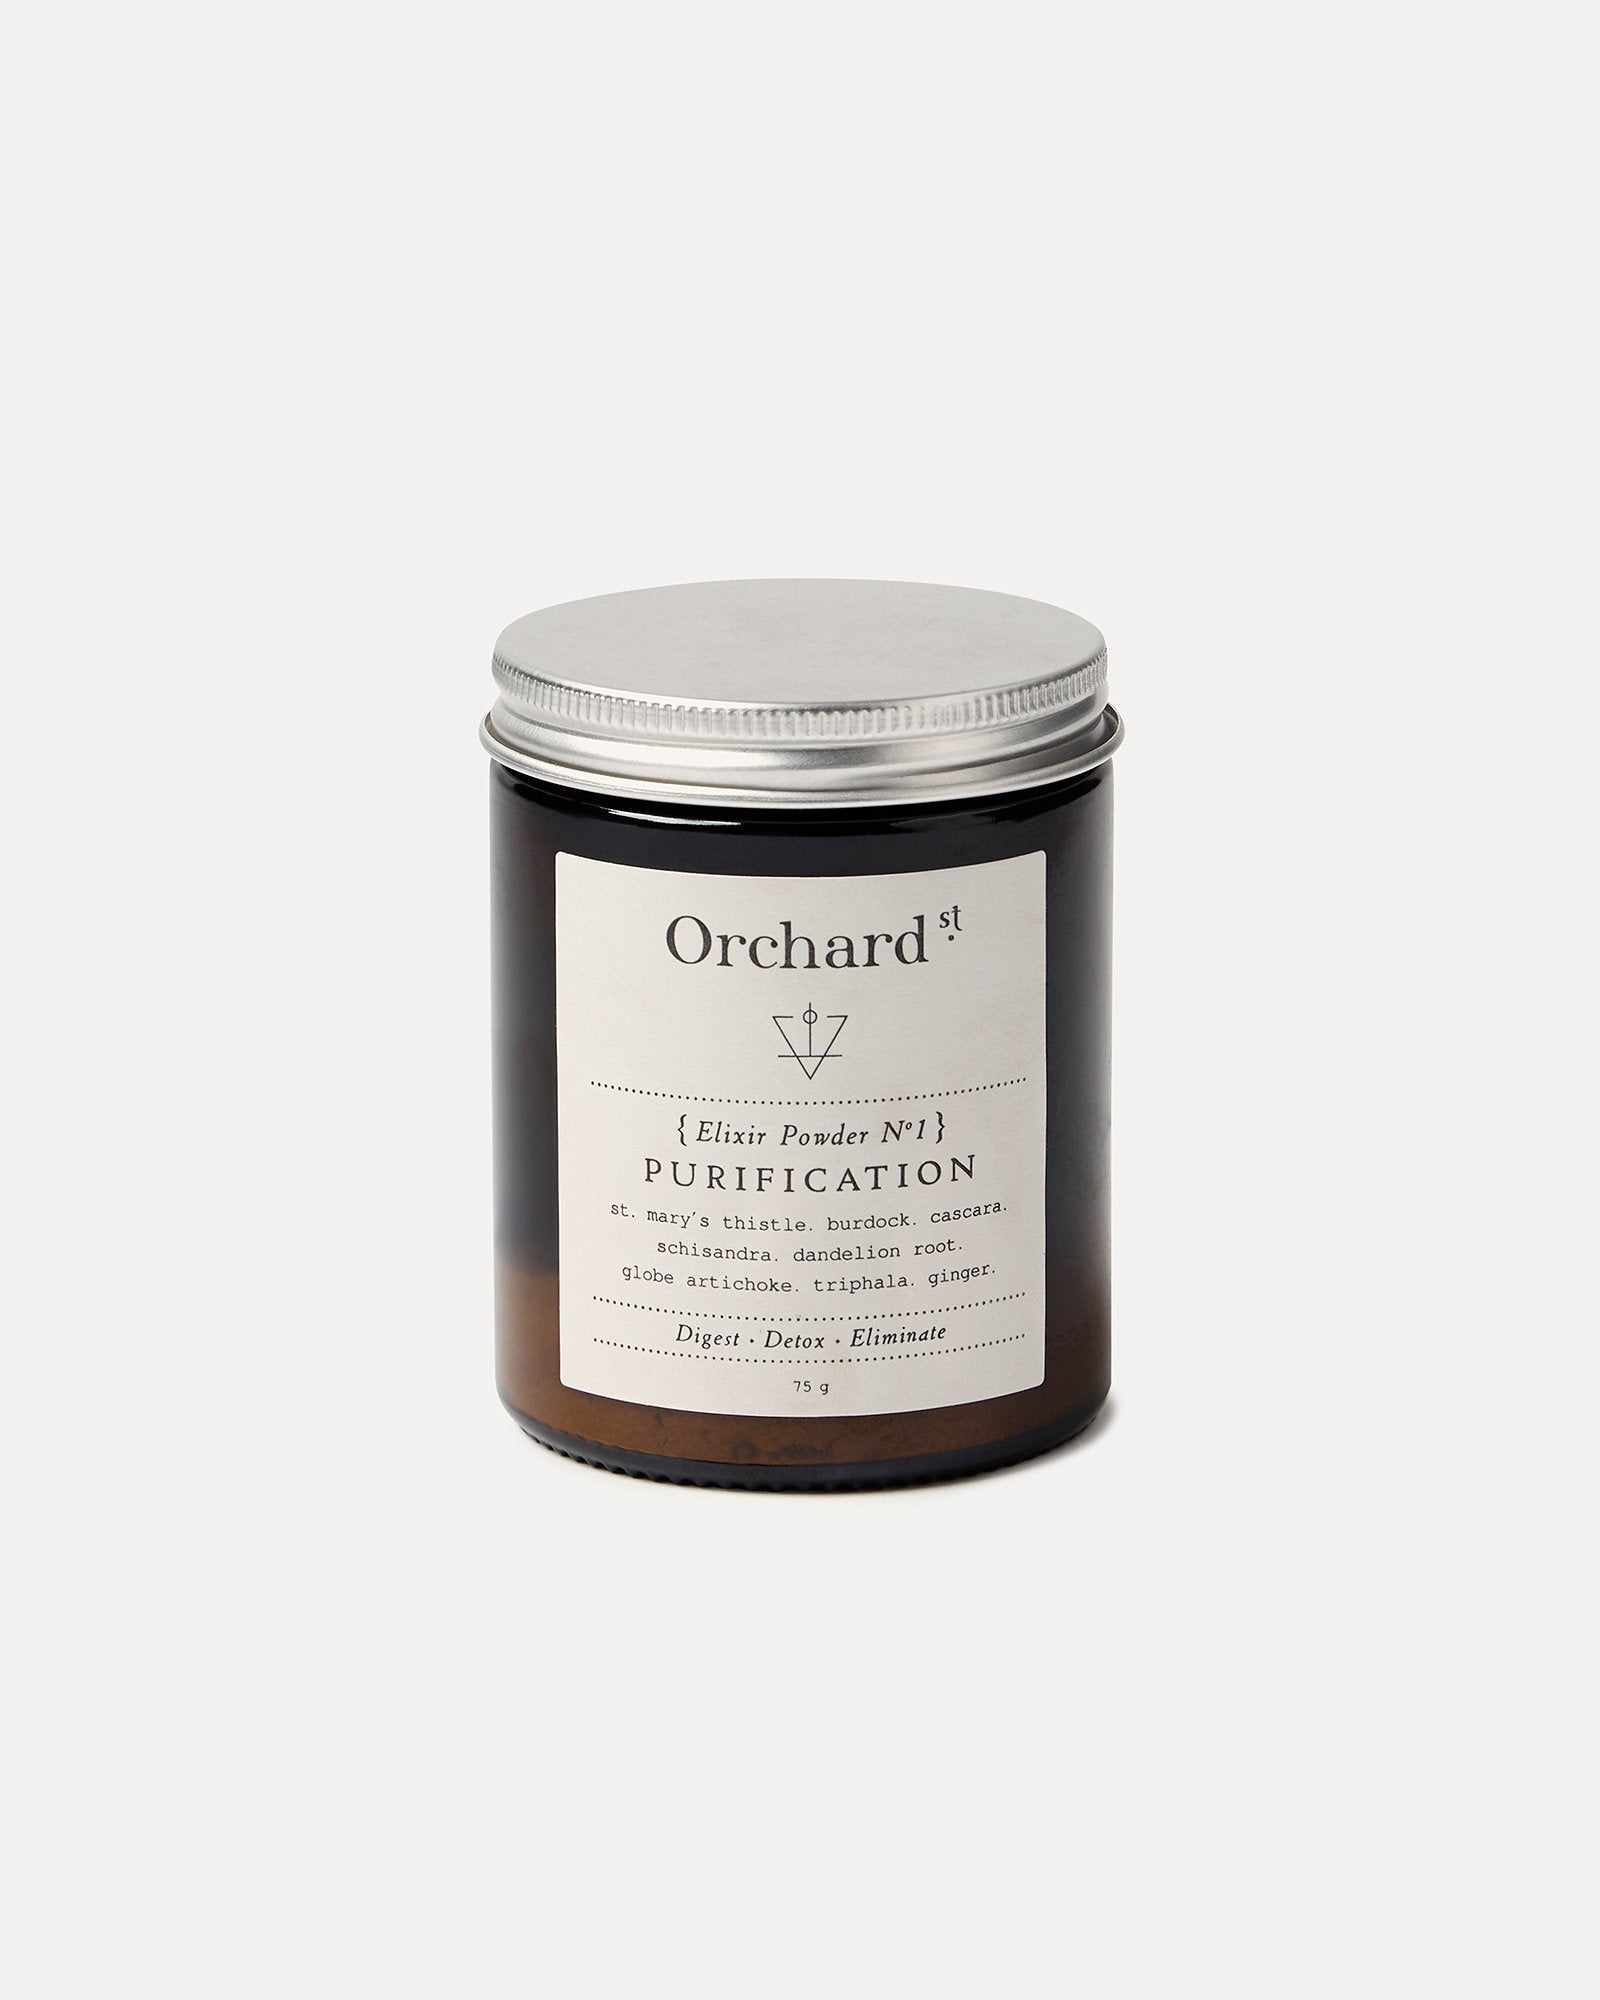 Orchard St Elixir Powder - Purification